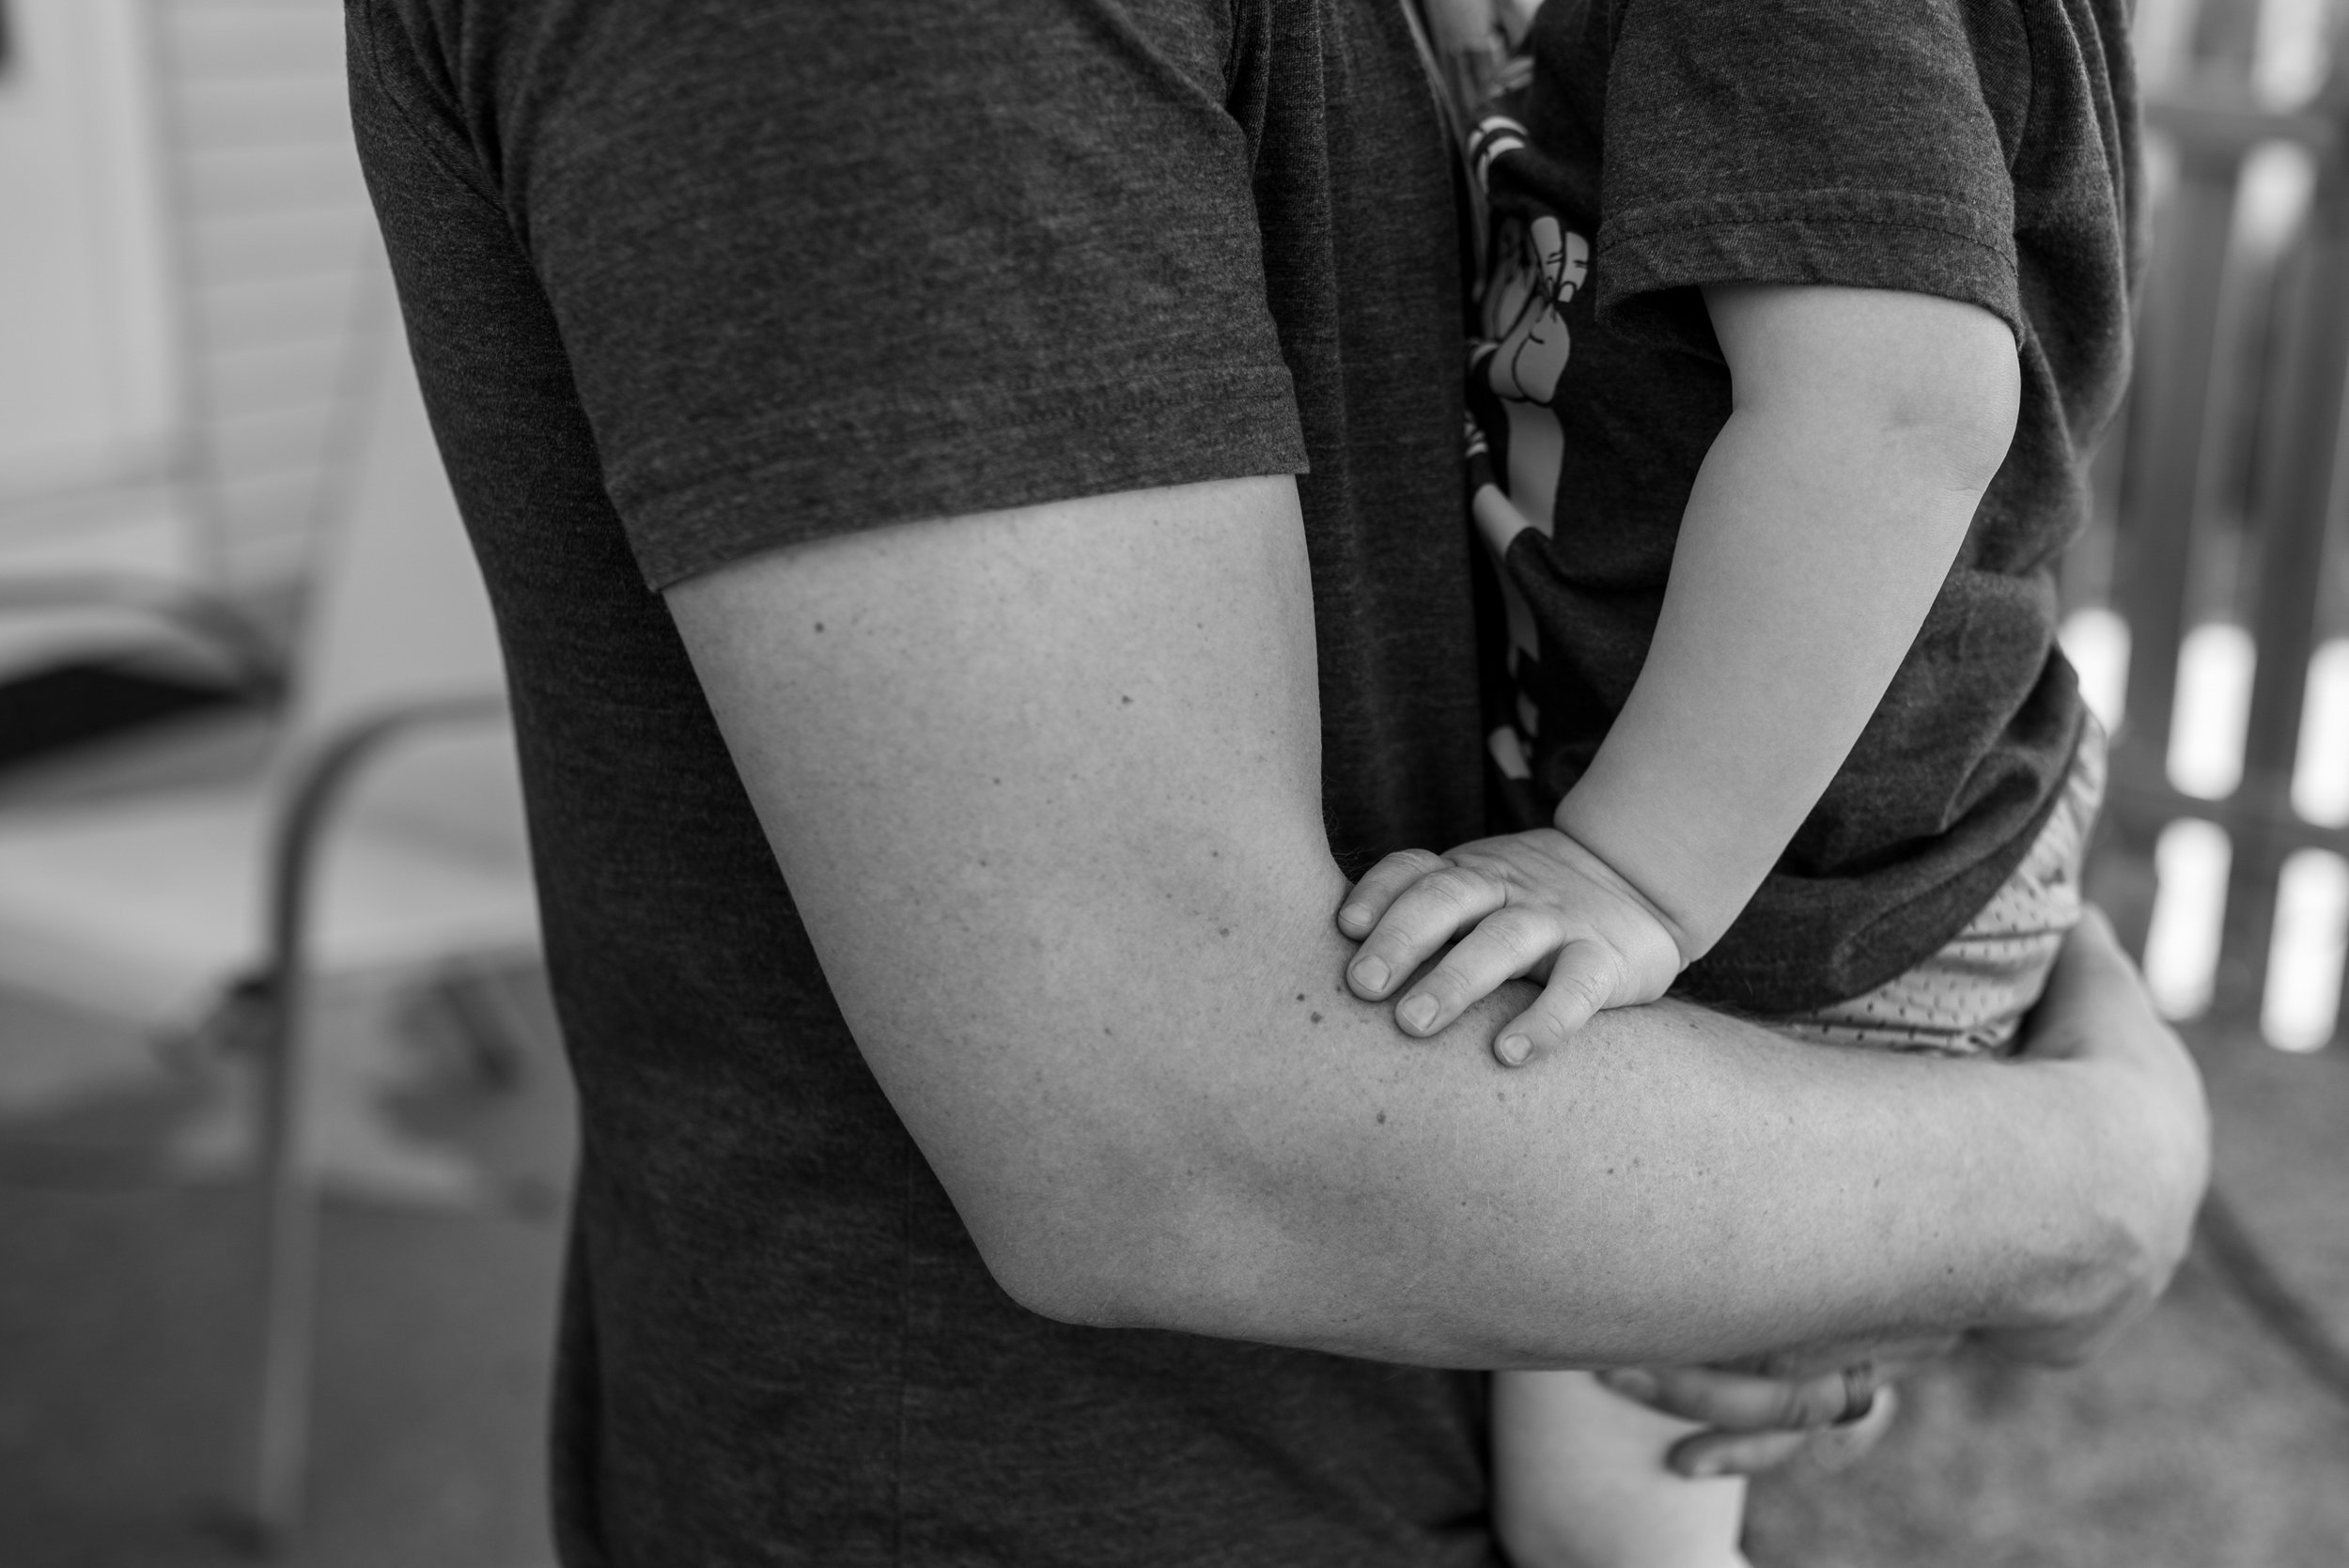 Dads arms holding son